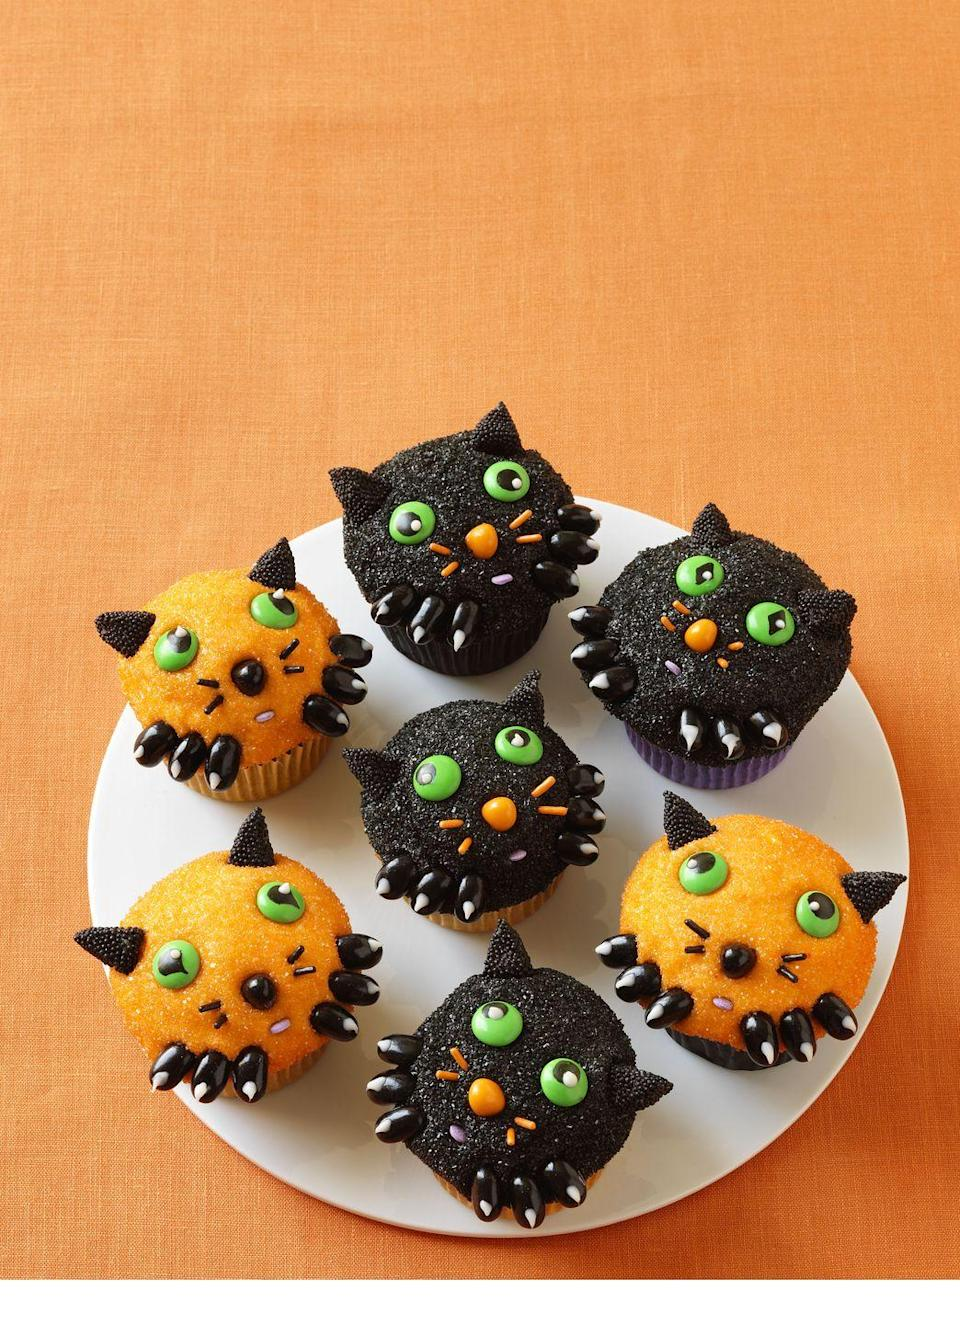 """<p>These cute chocolate cupcakes are perfect for a festive Halloween bash! Just watch out for anyone dressed as a dog ...</p><p><em><a href=""""https://www.womansday.com/food-recipes/food-drinks/recipes/a11375/kitten-cupcakes-recipe-wdy1012/"""" rel=""""nofollow noopener"""" target=""""_blank"""" data-ylk=""""slk:Get the recipe from Woman's Day »"""" class=""""link rapid-noclick-resp"""">Get the recipe from Woman's Day »</a></em></p>"""